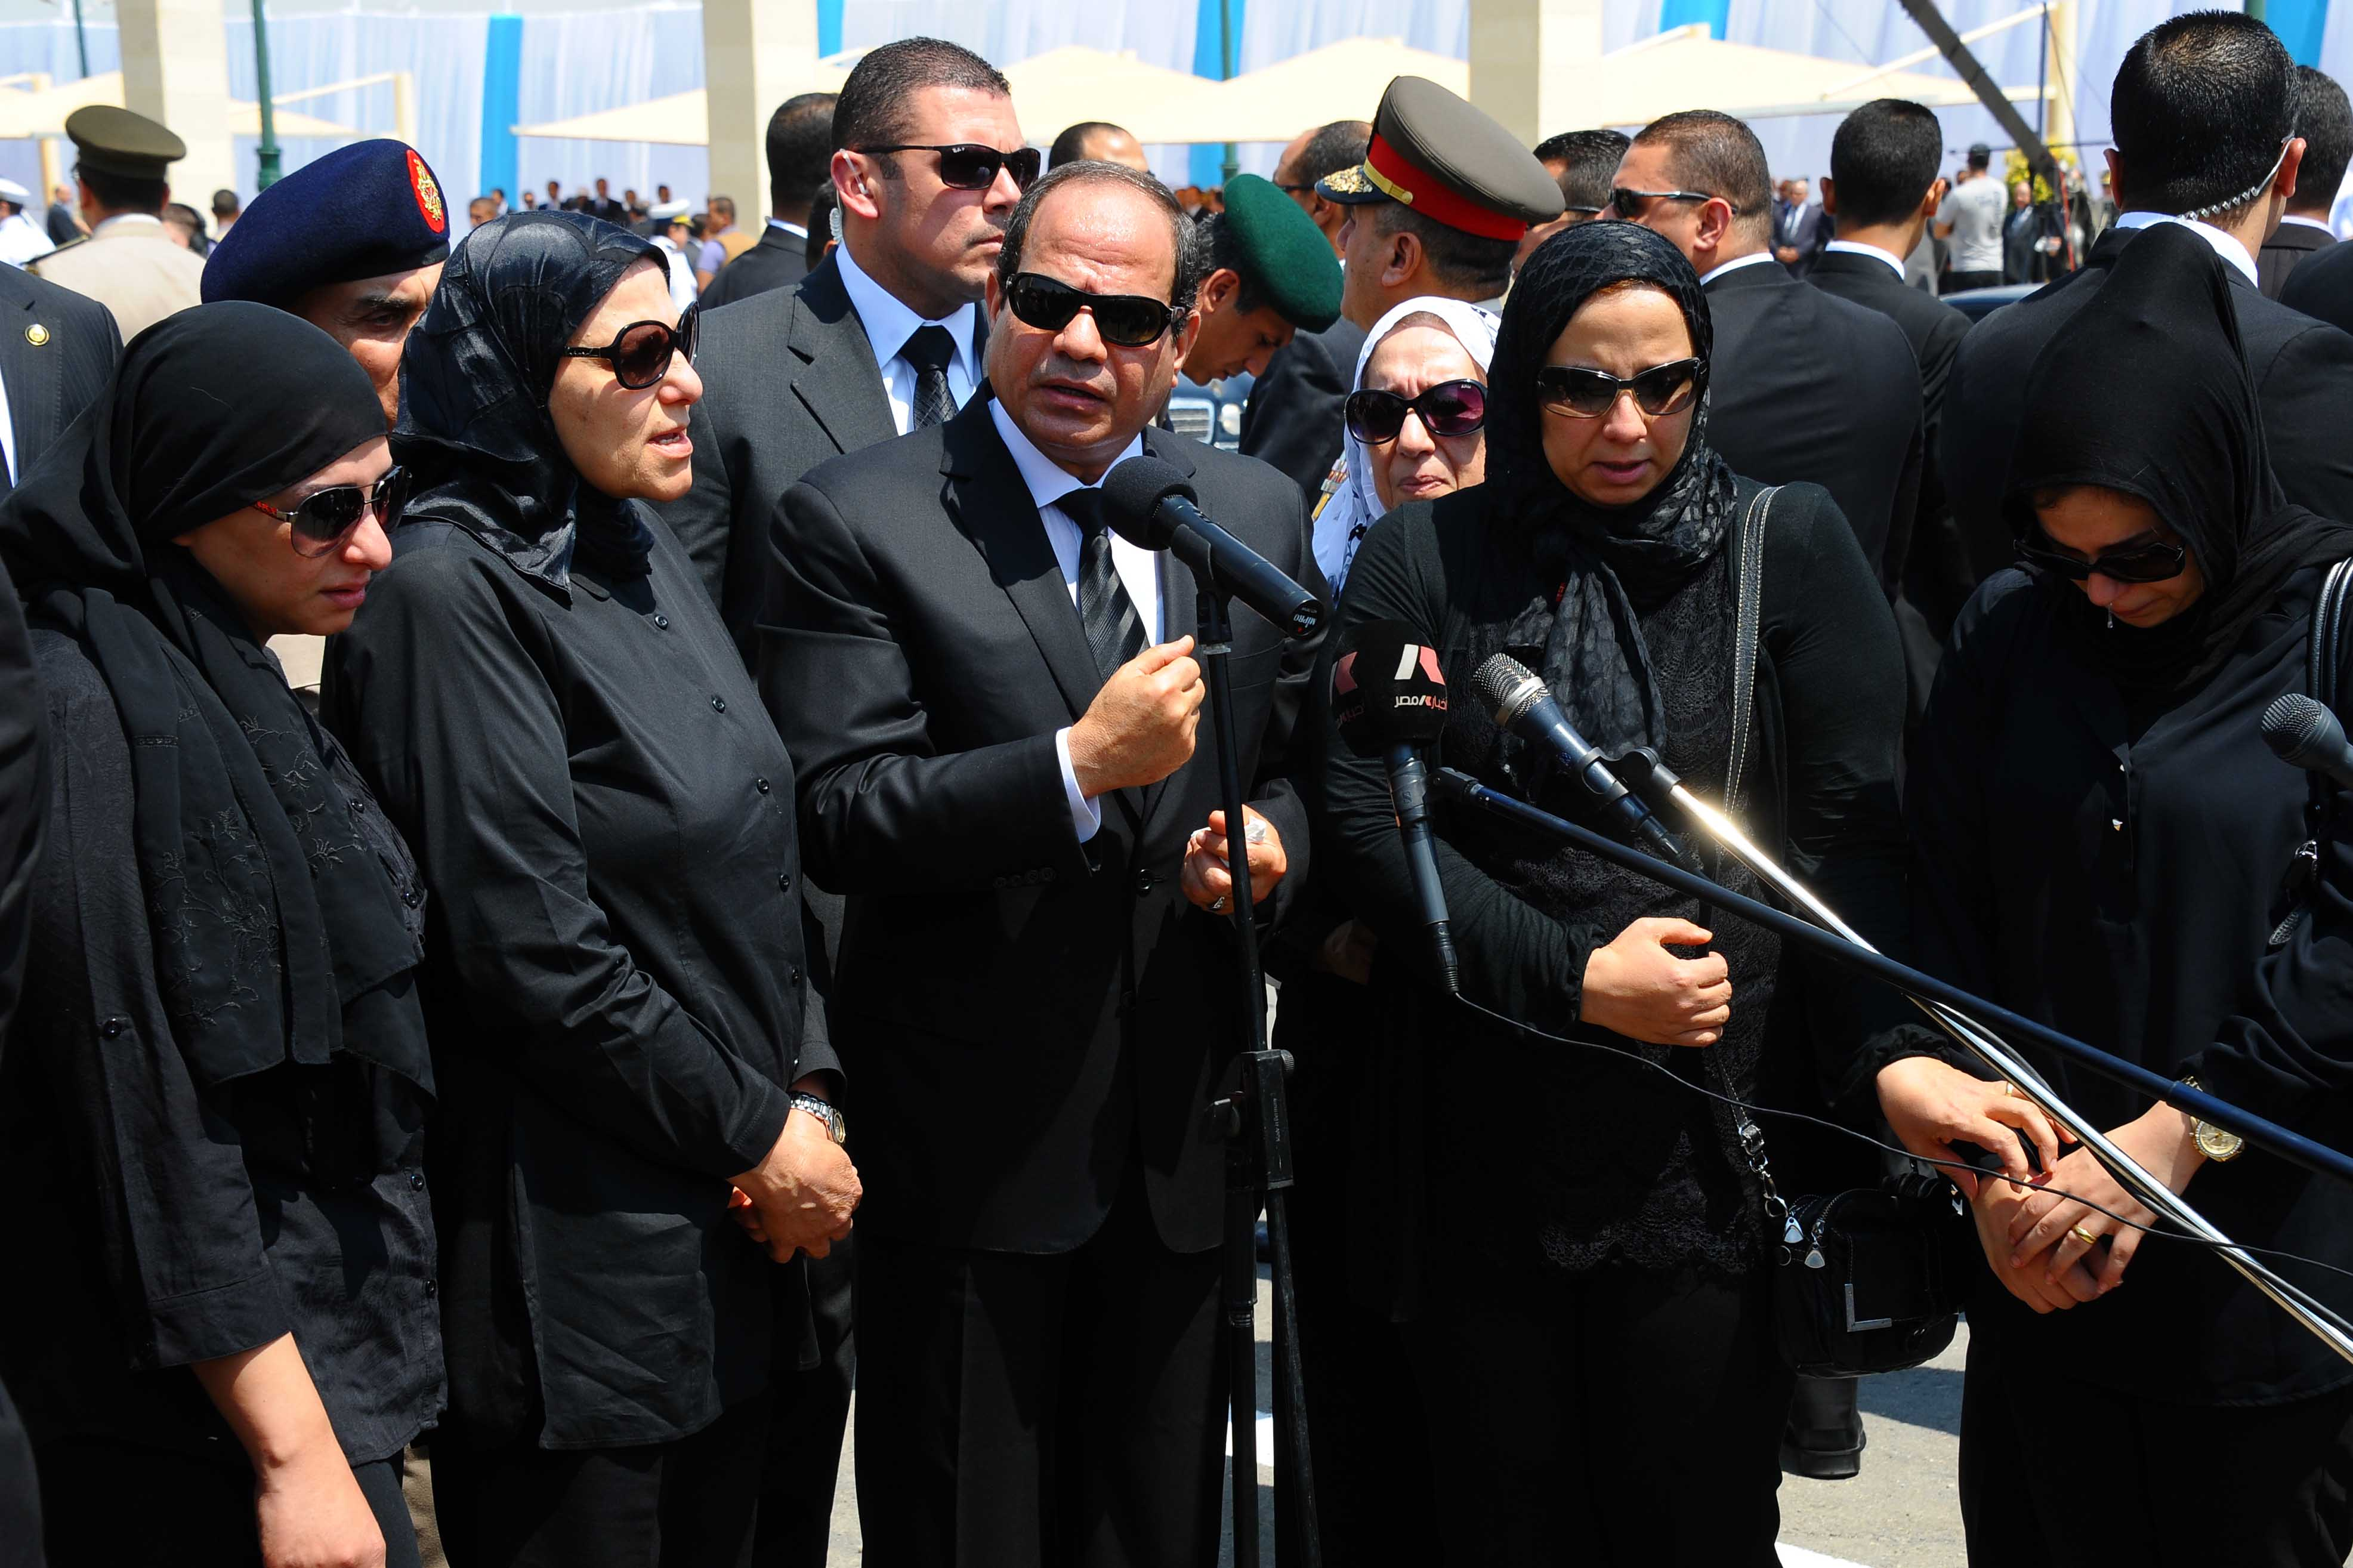 """President Abdel Fattah Al-Sisi made comments the day after Barakat's assassination saying """"effective justice is restricted by laws; we will amend laws to achieve justice as soon as possible"""". (Photo Presidency Handout)"""